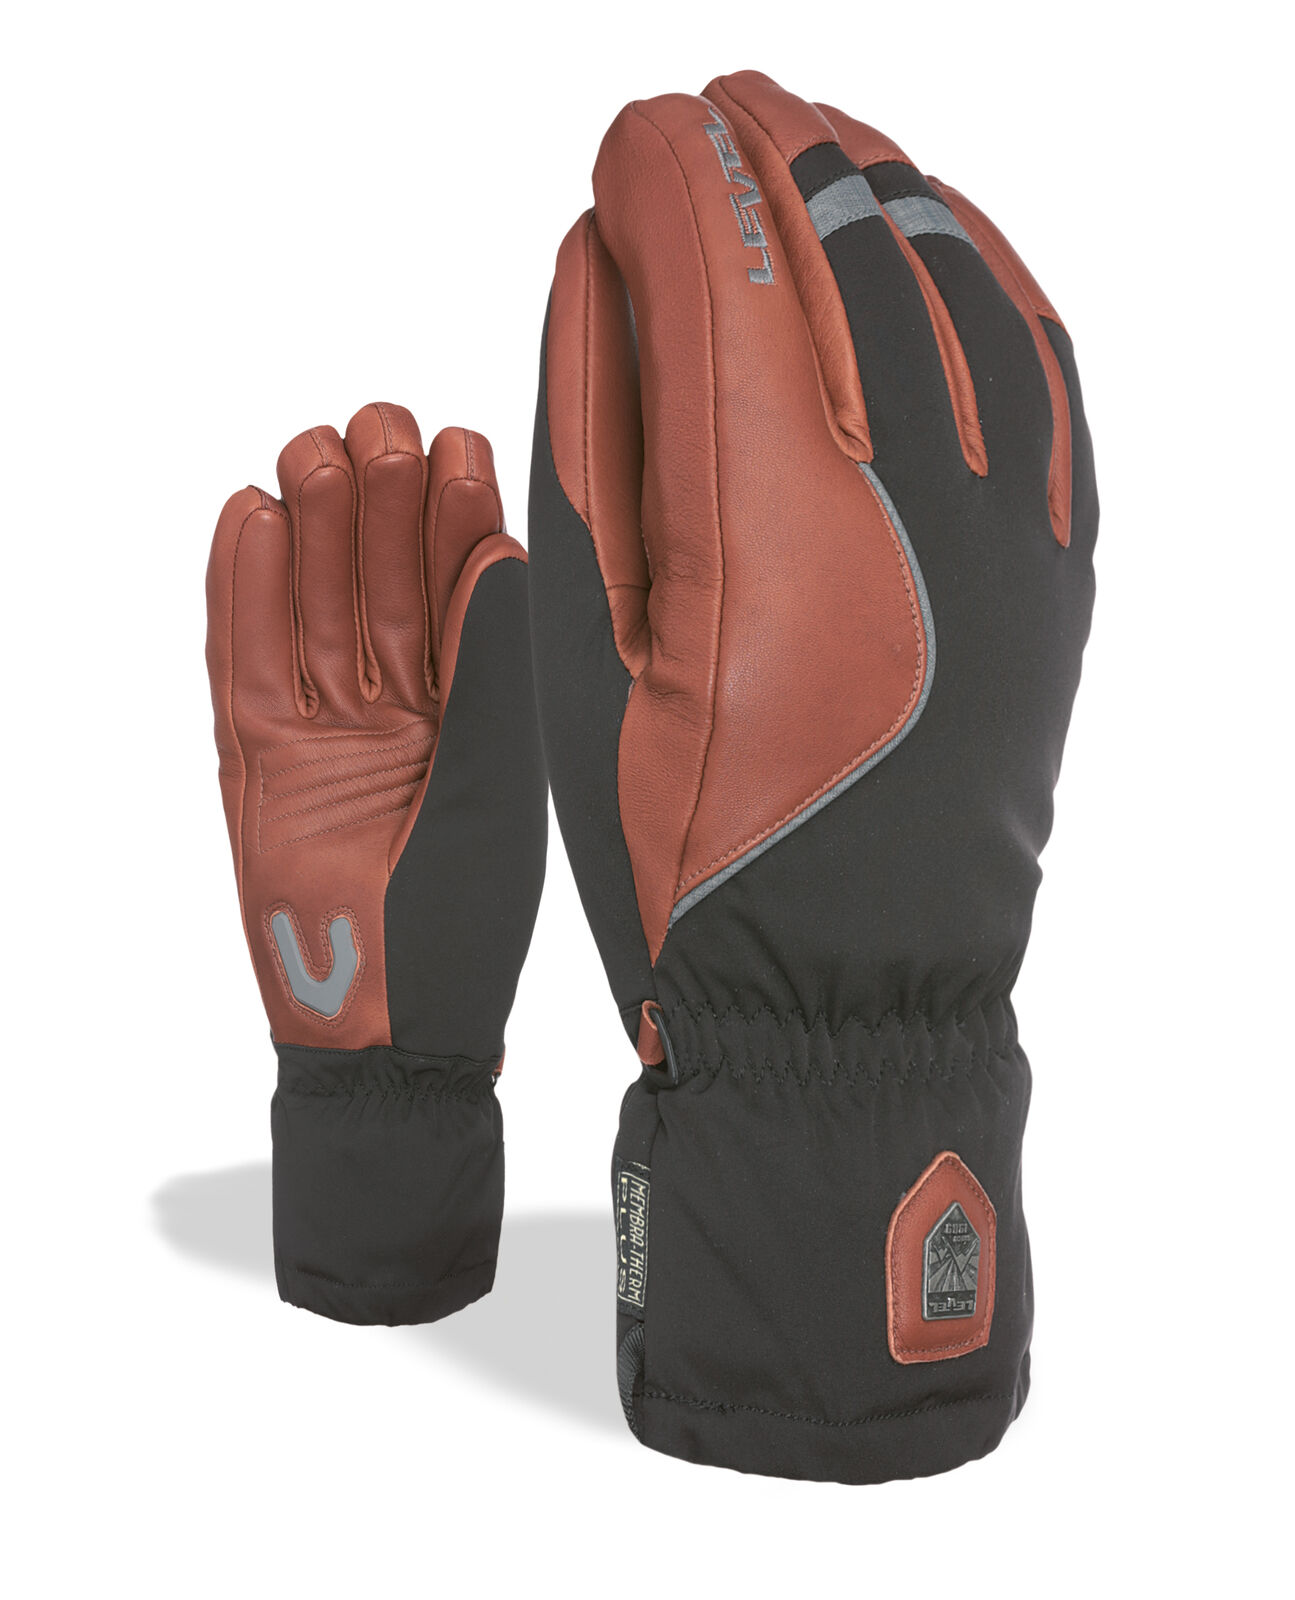 Level Guantes Off Pista brown Impermeable Transpirable Cálidos